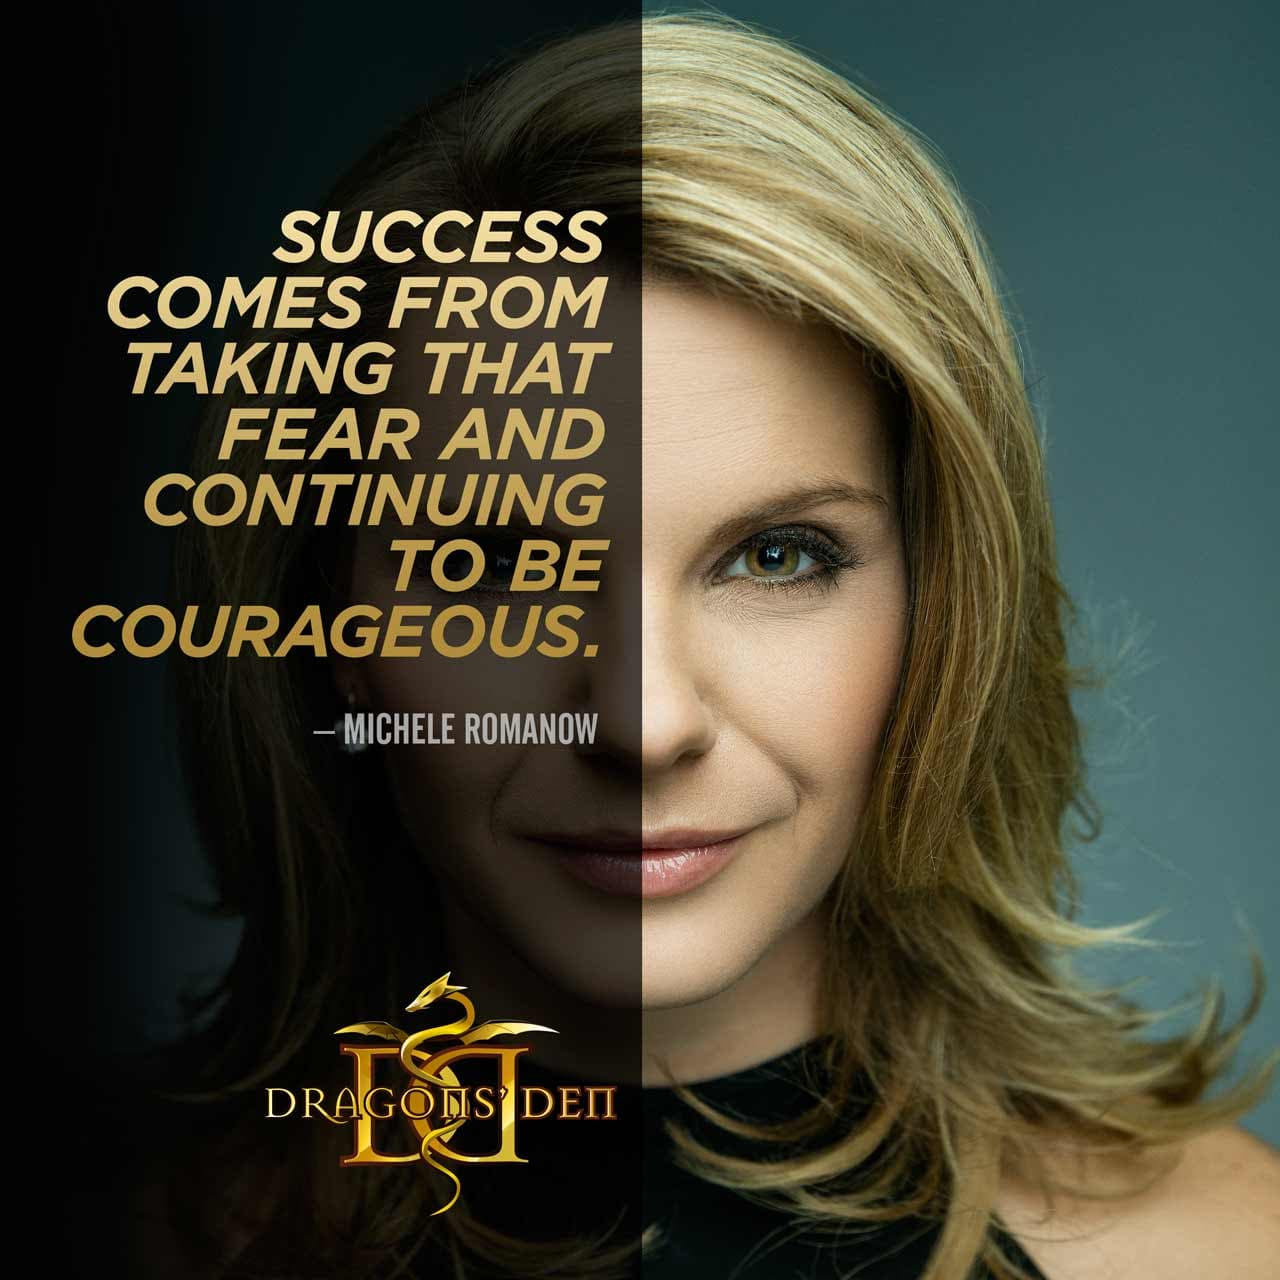 Success comes from taking that fear and continuing to be courageous. Said by Michele Romanow